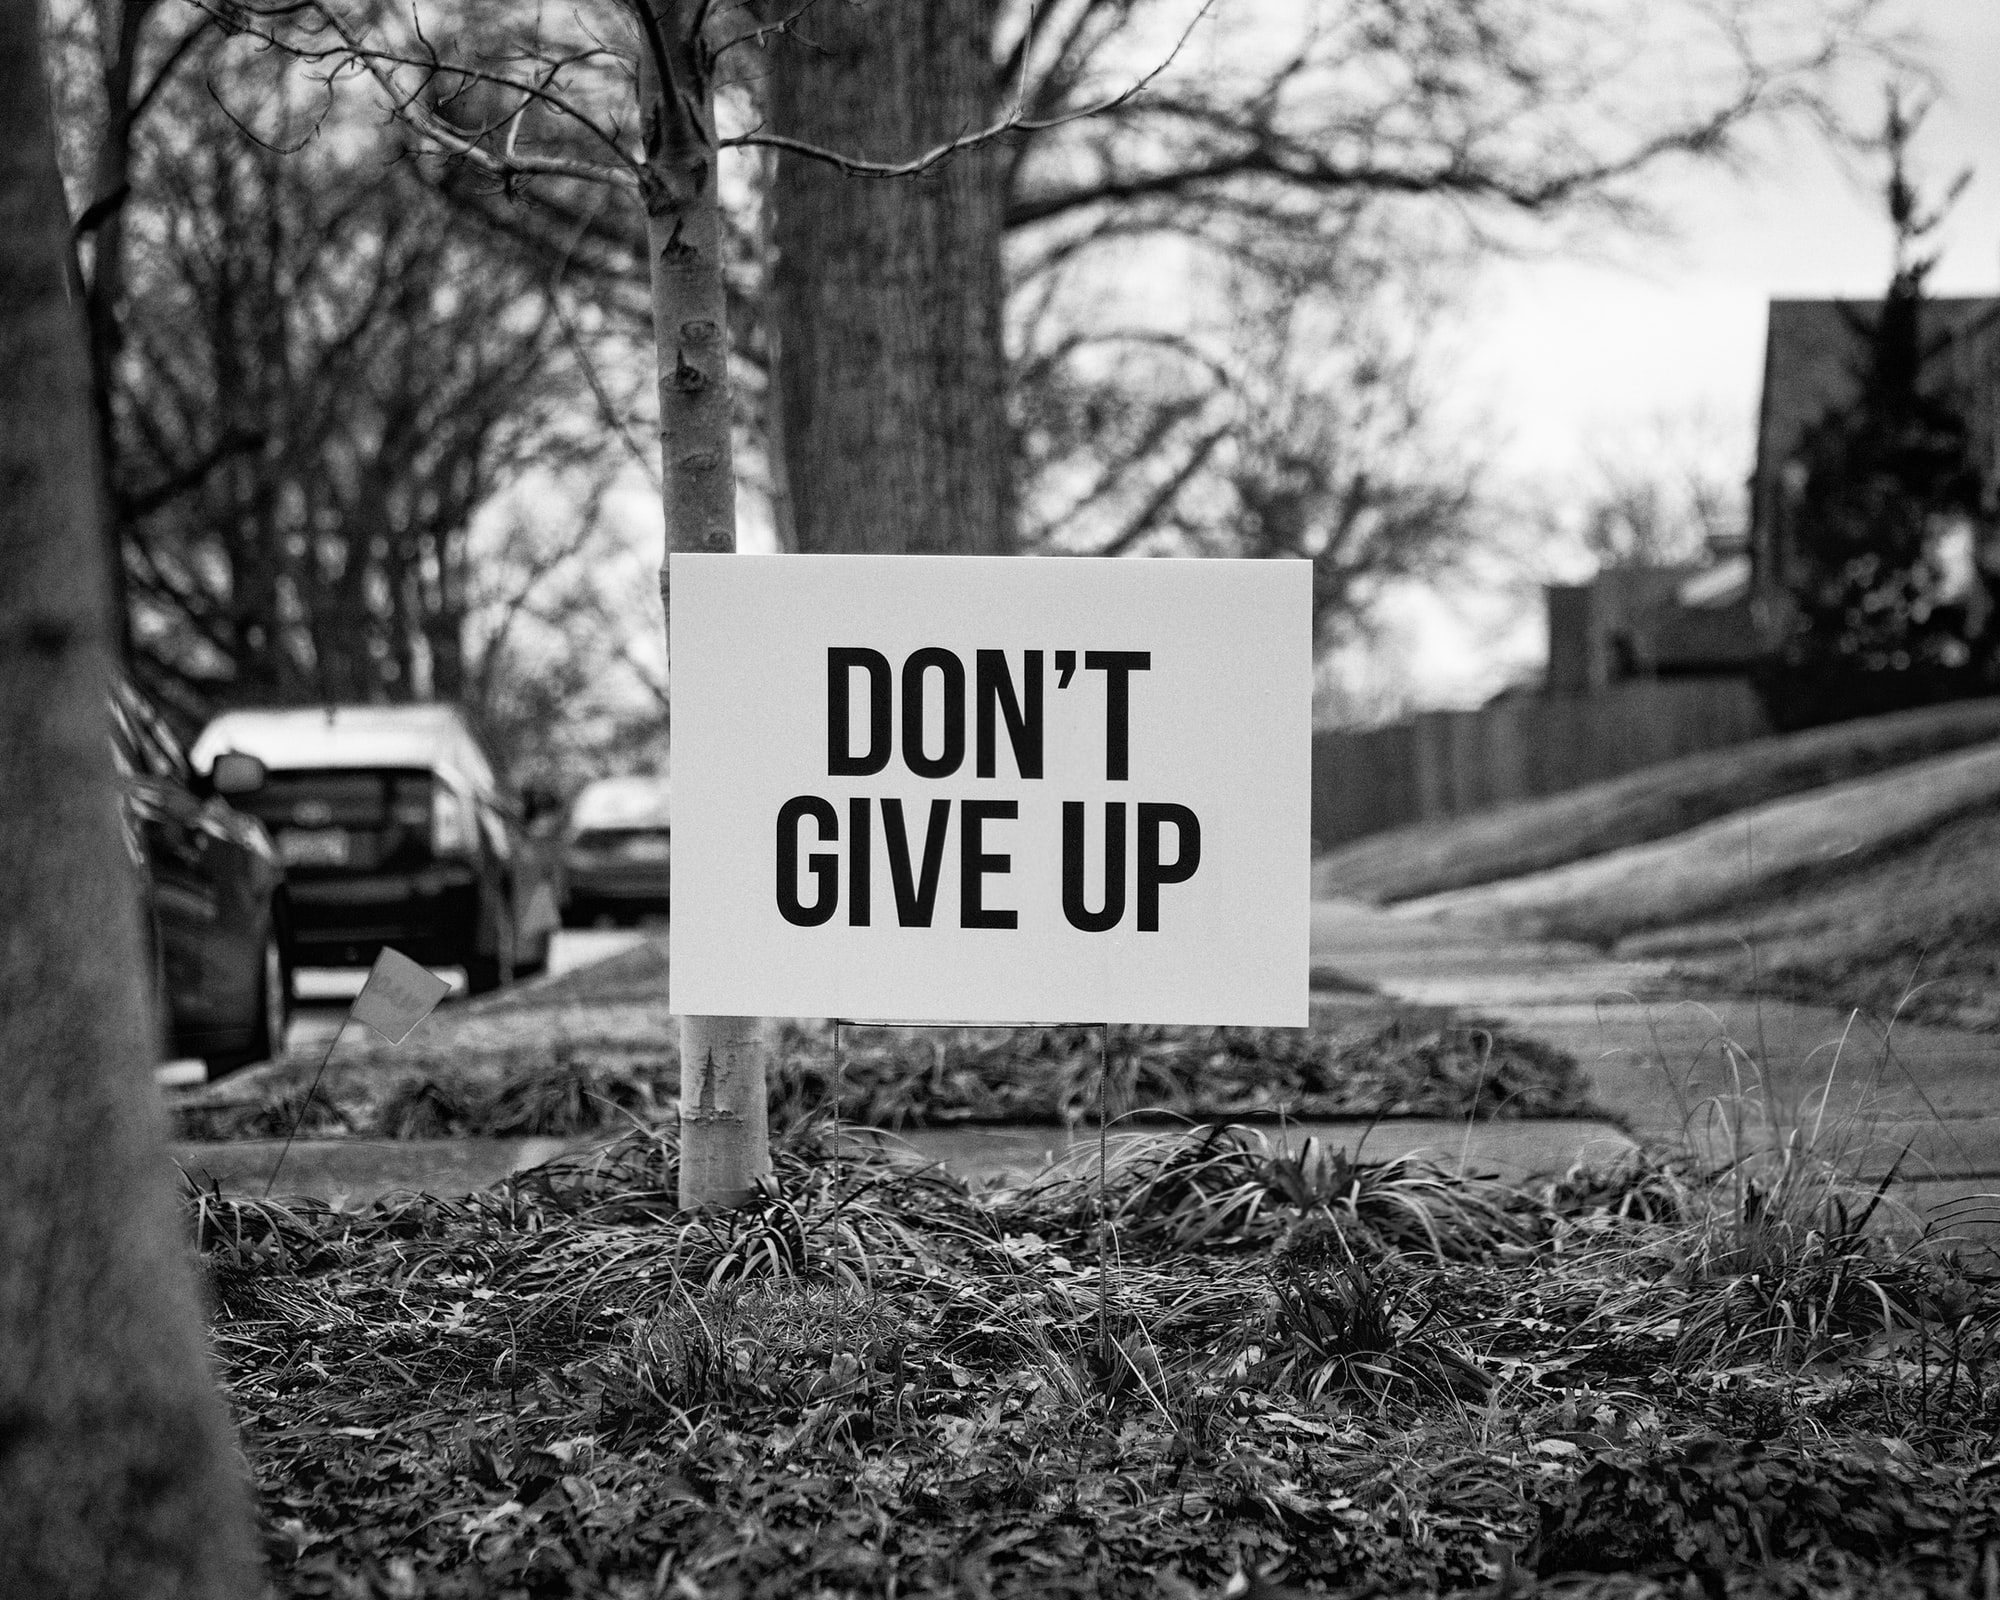 To those about to give up...